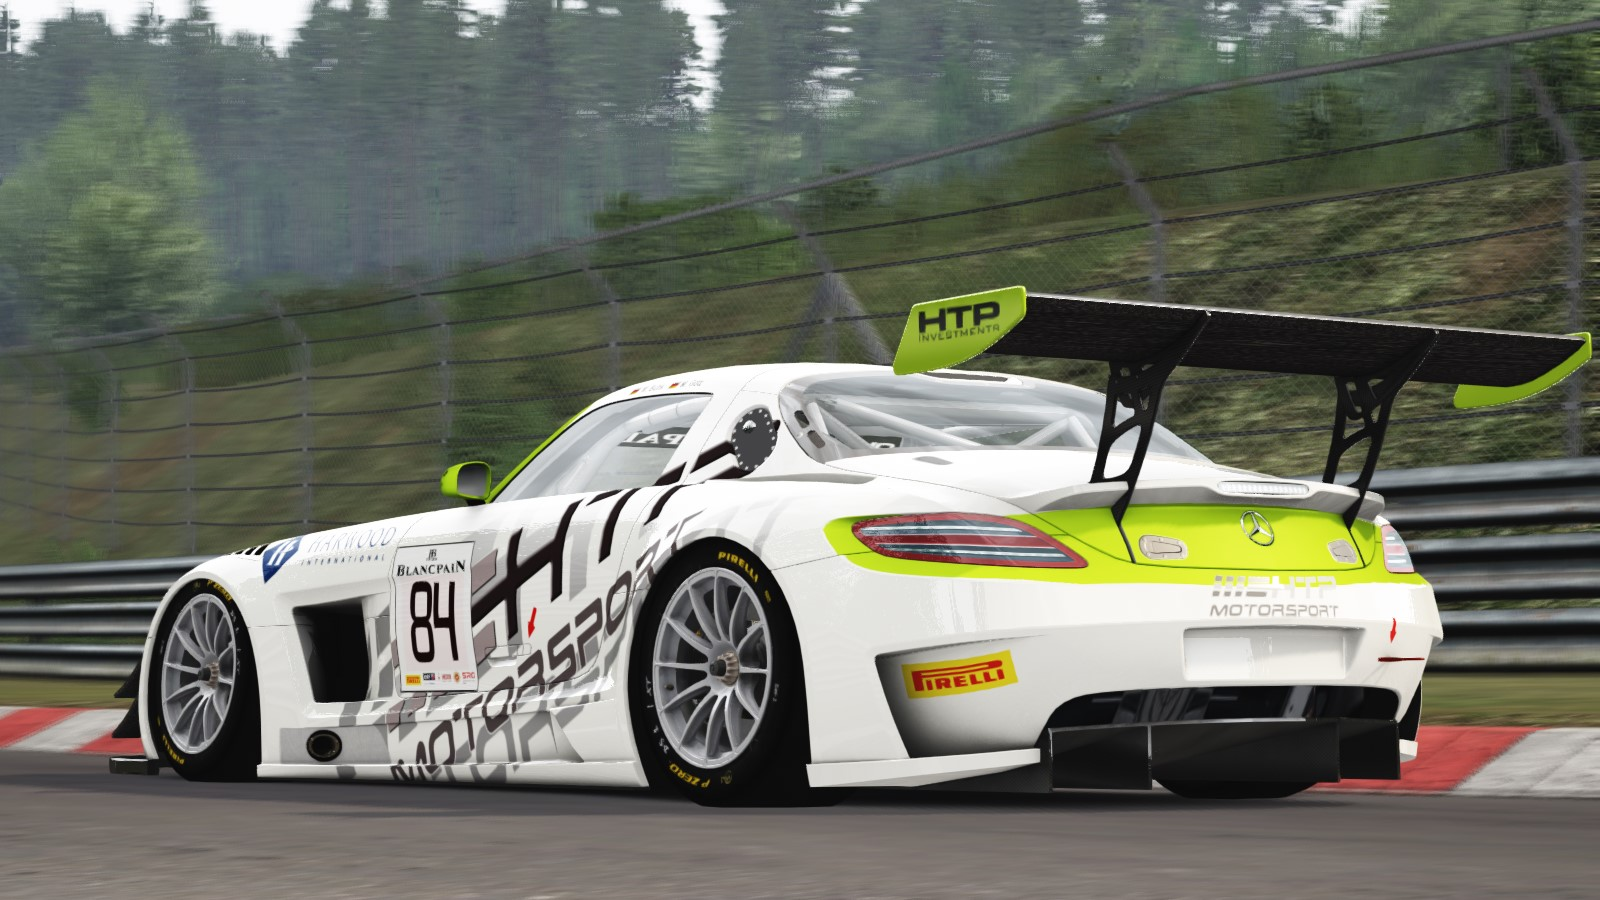 Screenshot_mercedes_sls_gt3_ks_nordschleife_25-4-115-19-18-13.jpg